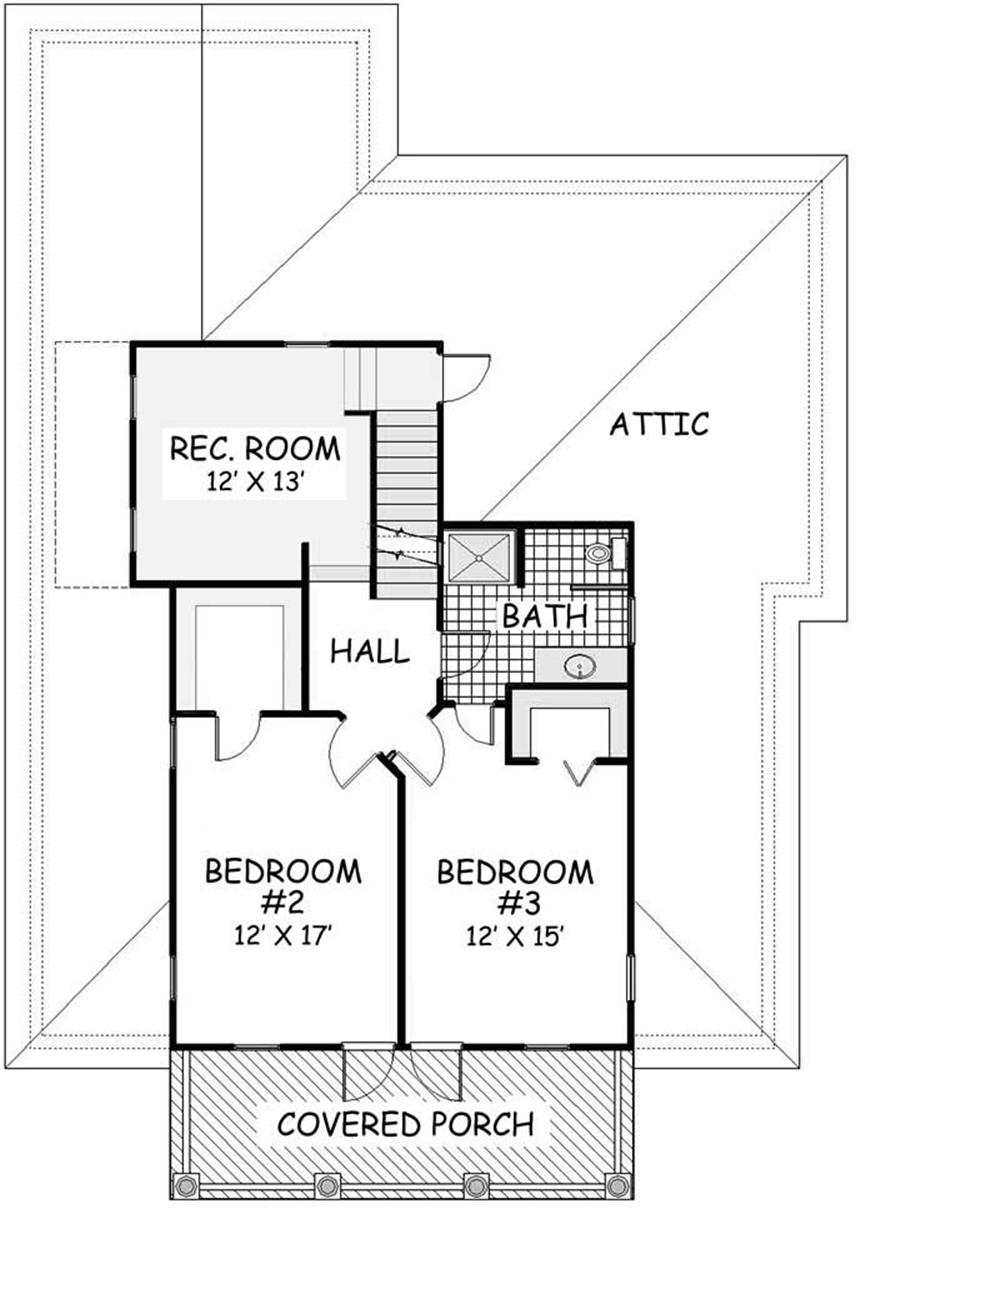 Second floor images for Second story floor plan